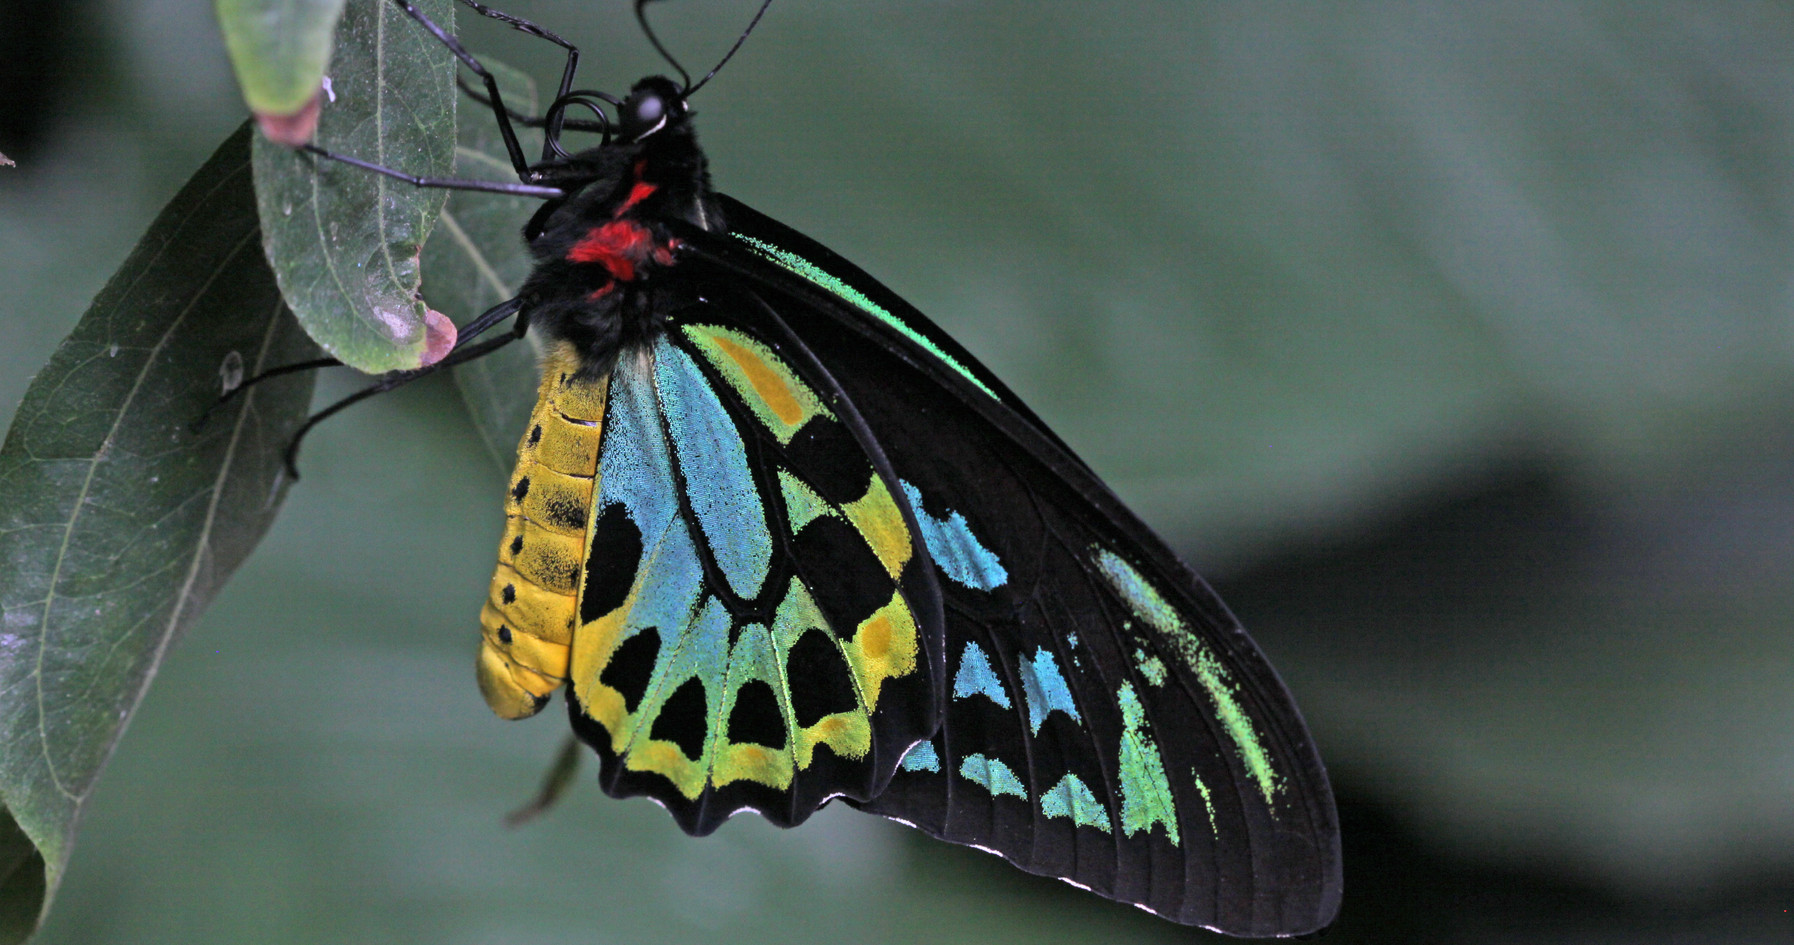 His Majesty, the Cairn's Birdwing